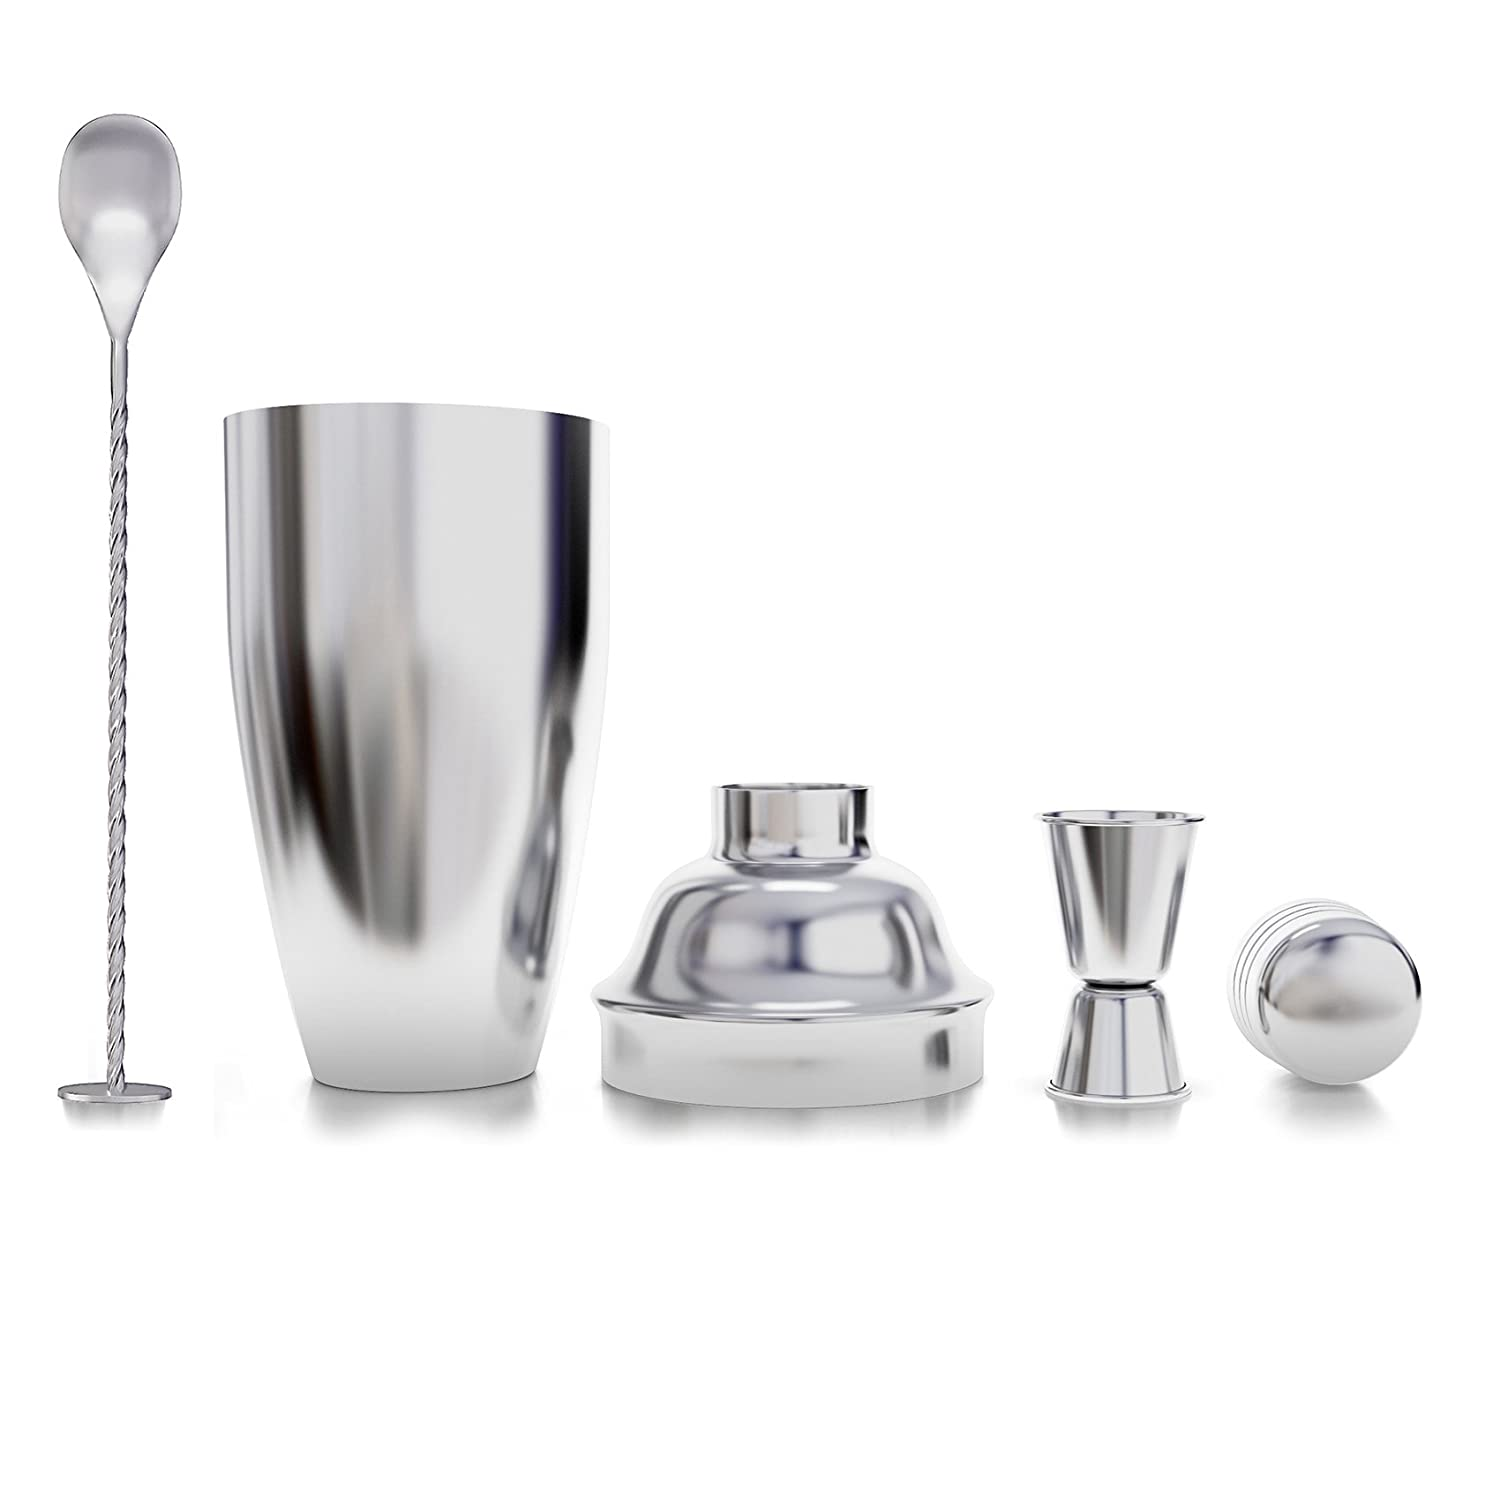 24 Ounce Cocktail Shaker Set With Measuring Jigger and Mixing Spoon